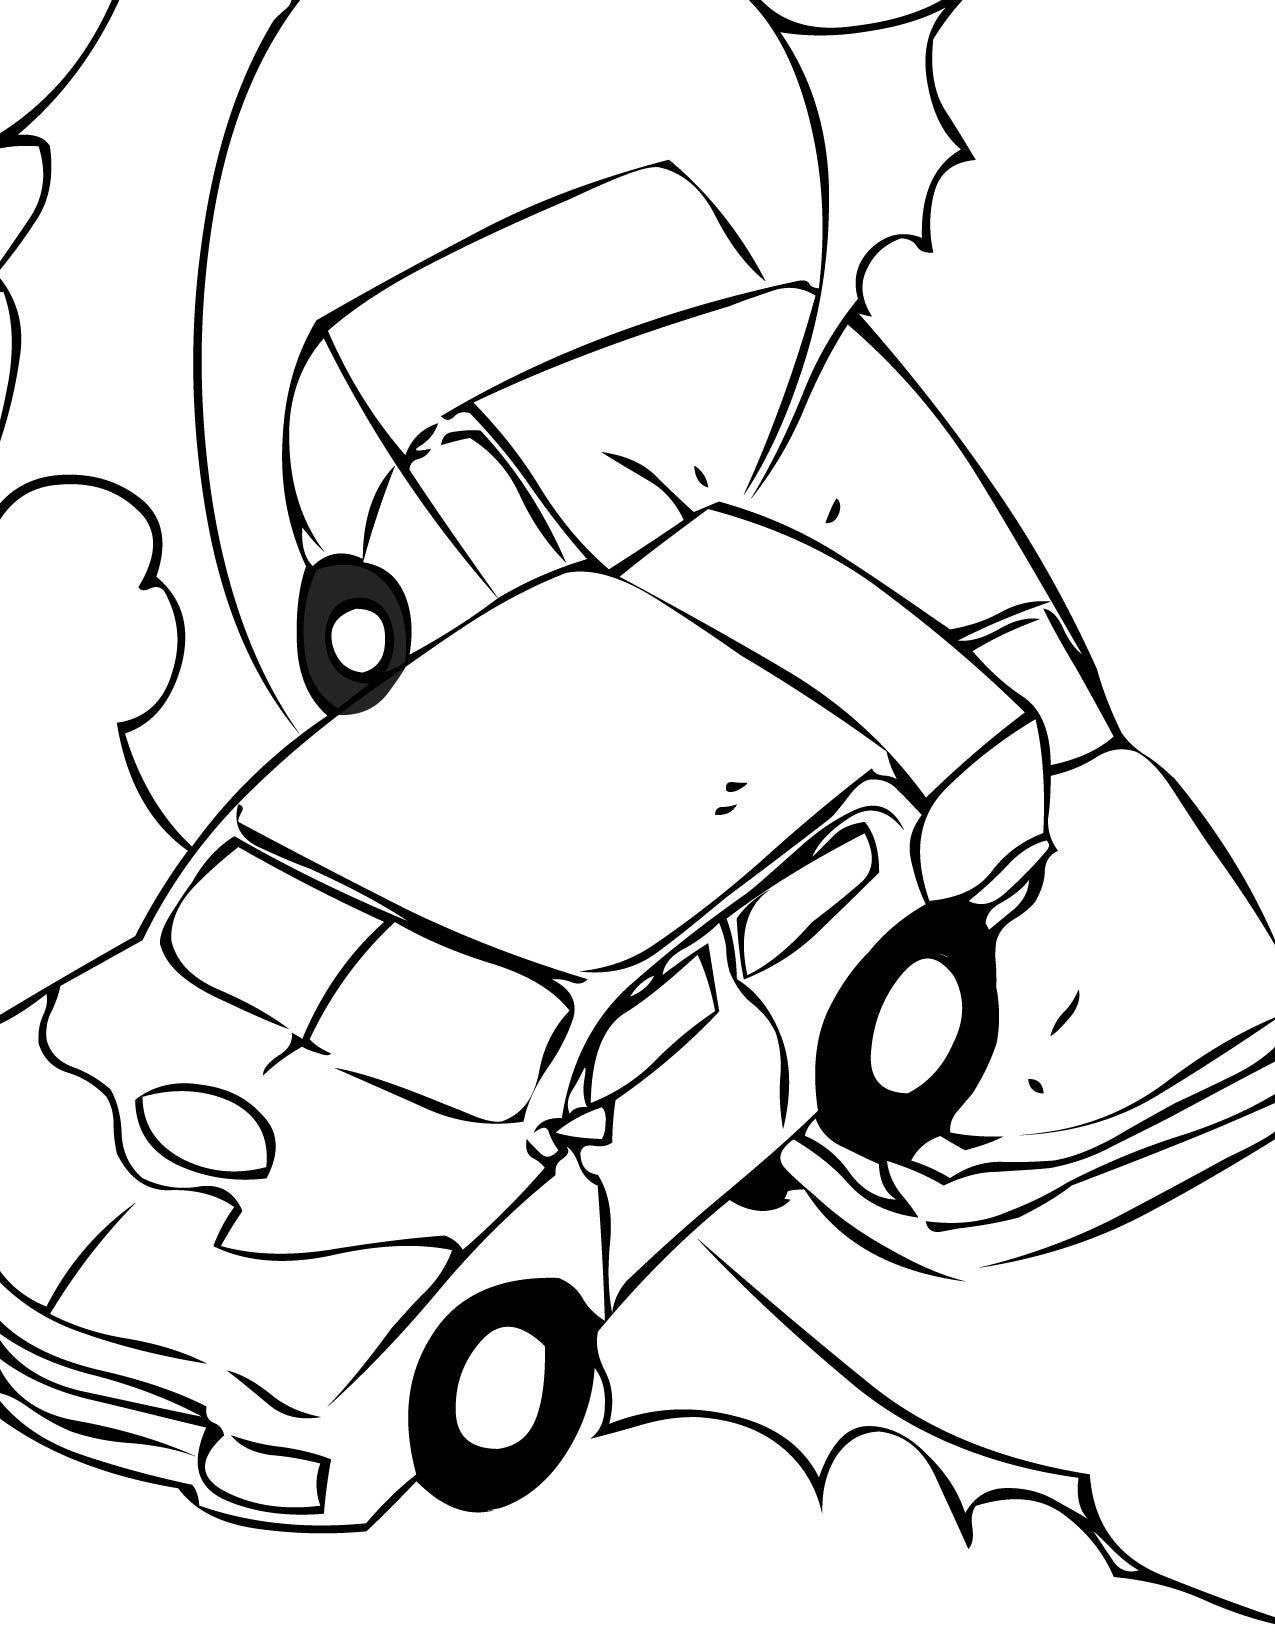 Coloring derby cars - Demolition Derby Cars Coloring Pages By Anthony